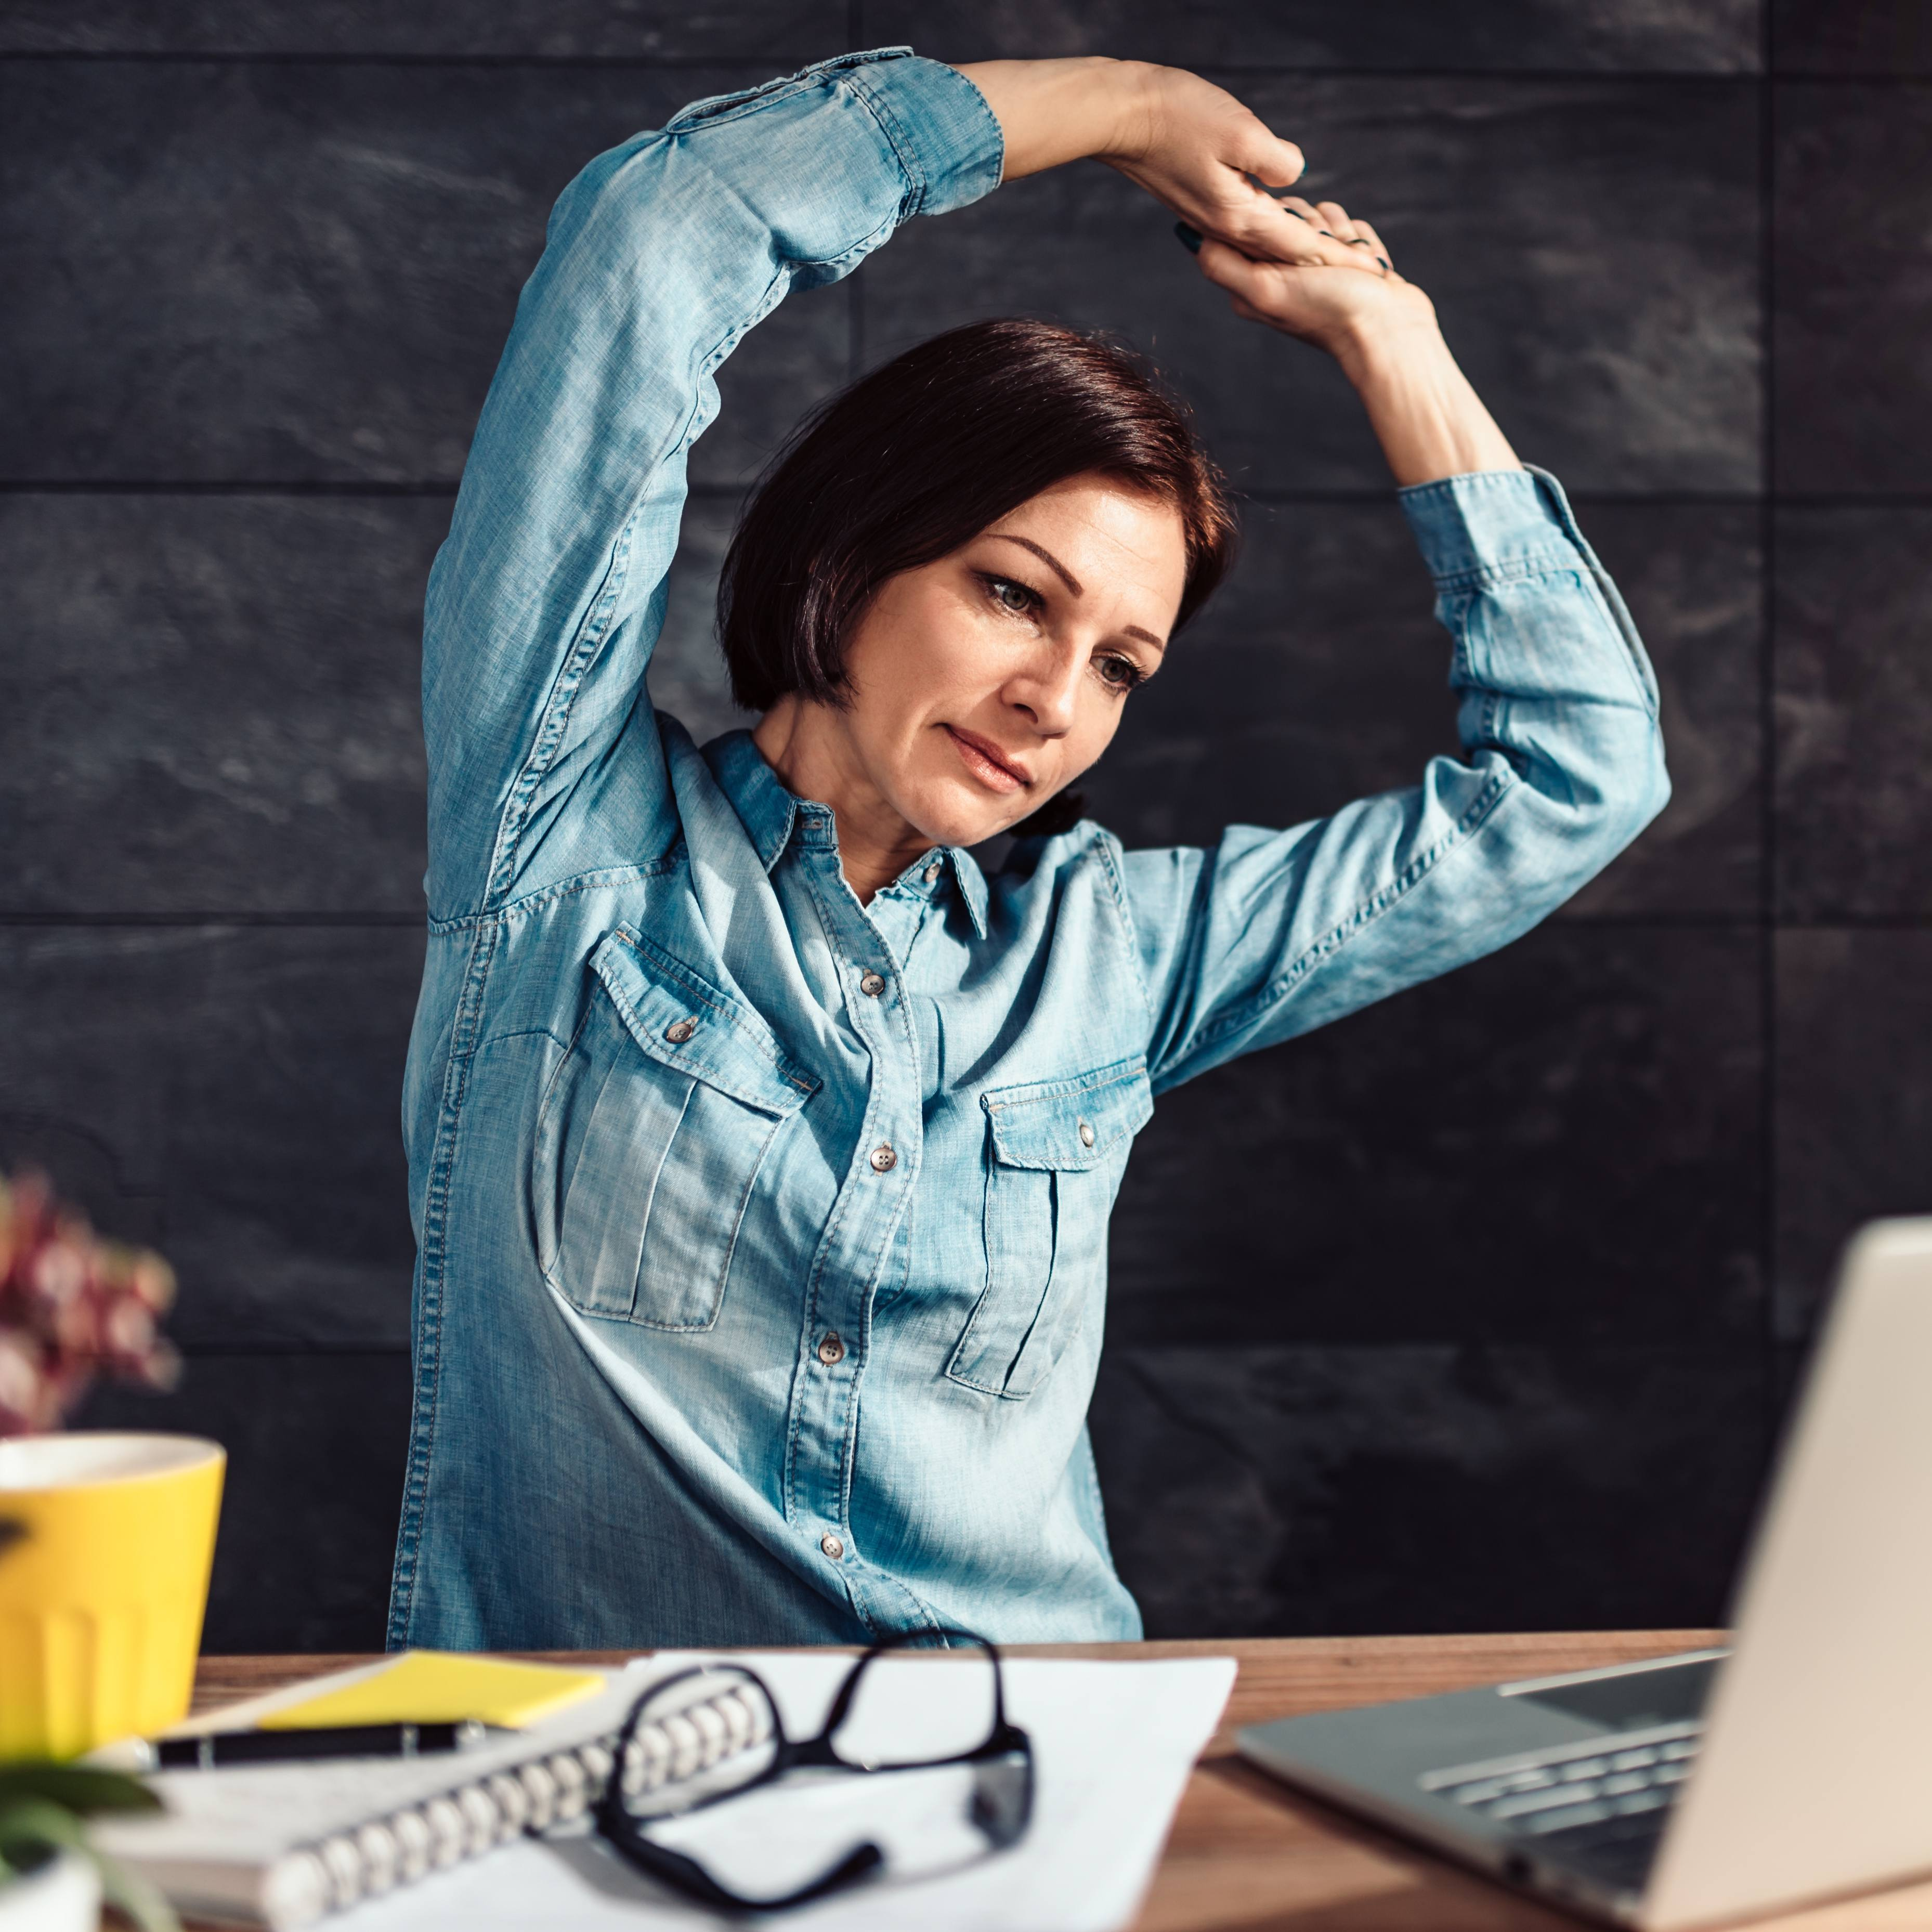 a white woman in a denim shirt sitting at a desk with a laptop, working and stretching her arms above her head to exercise